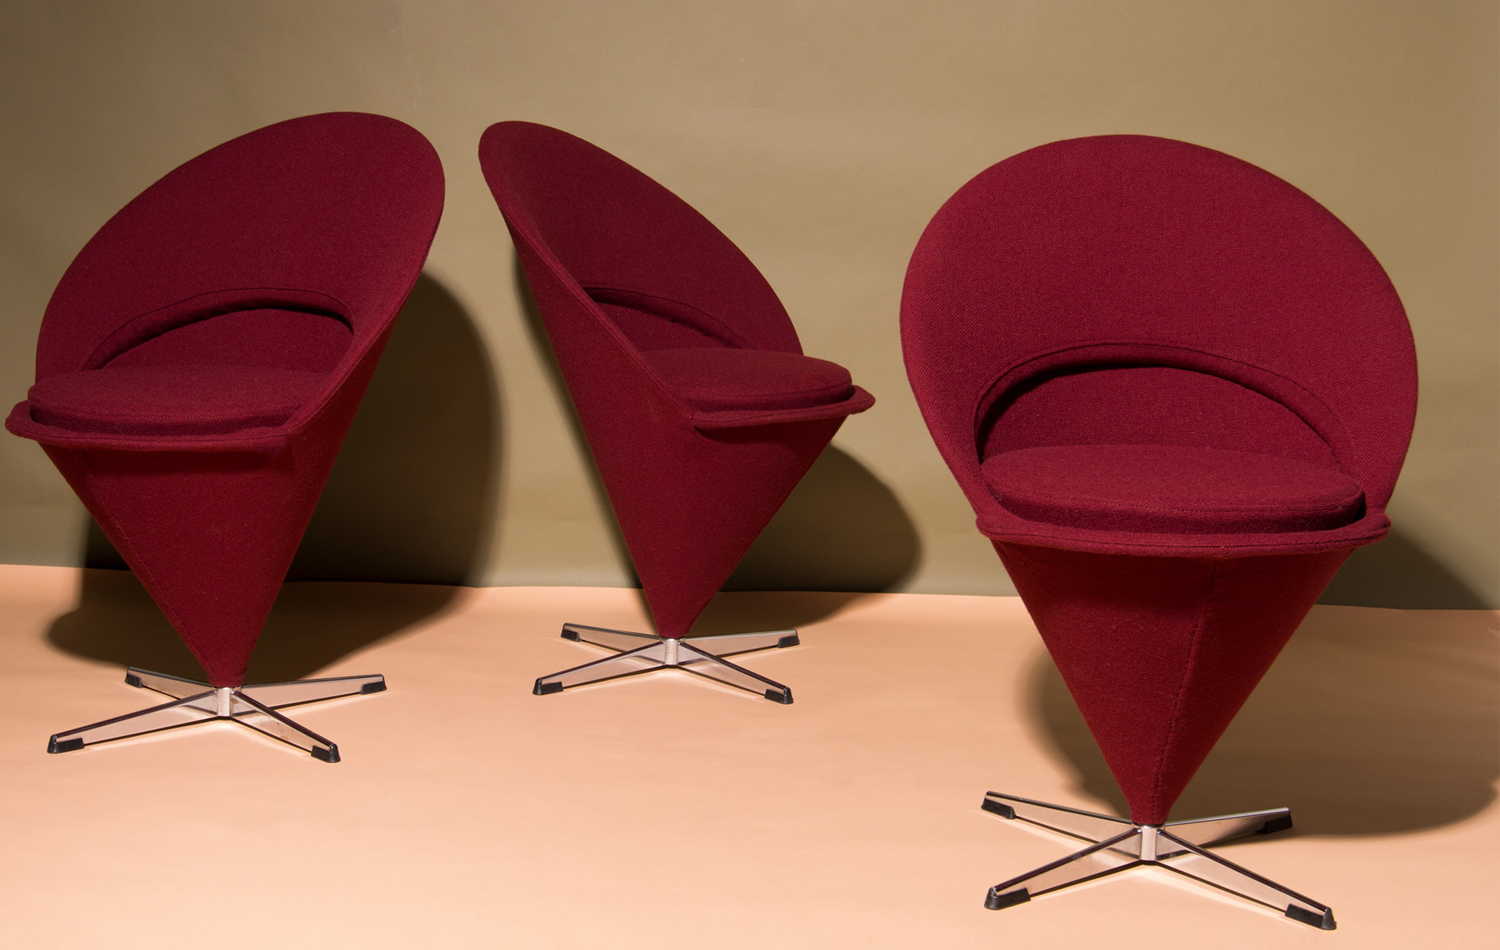 Verner Panton cone chairs